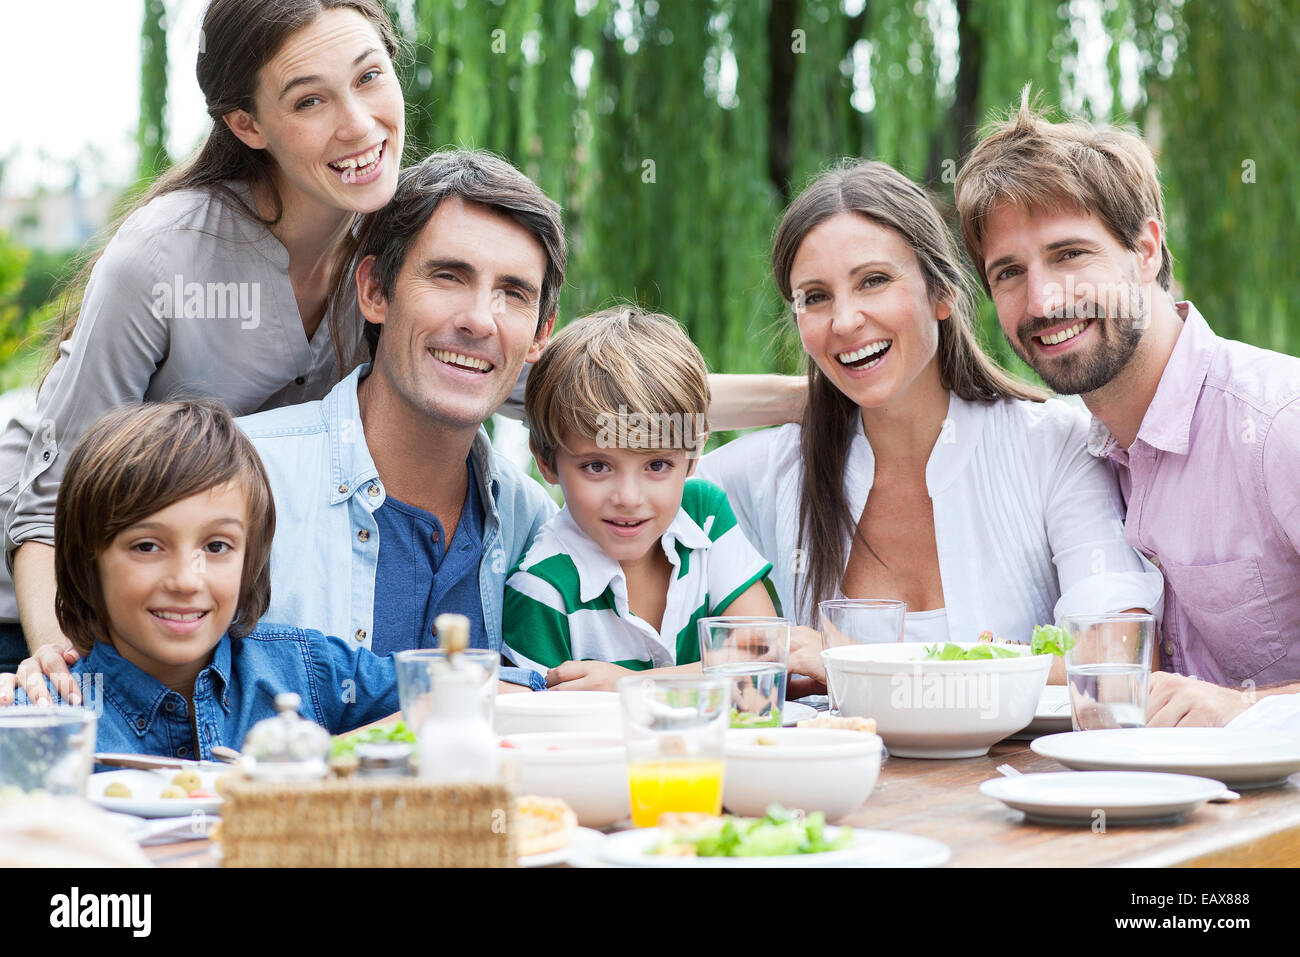 Family posing for portrait at outdoor gathering - Stock Image